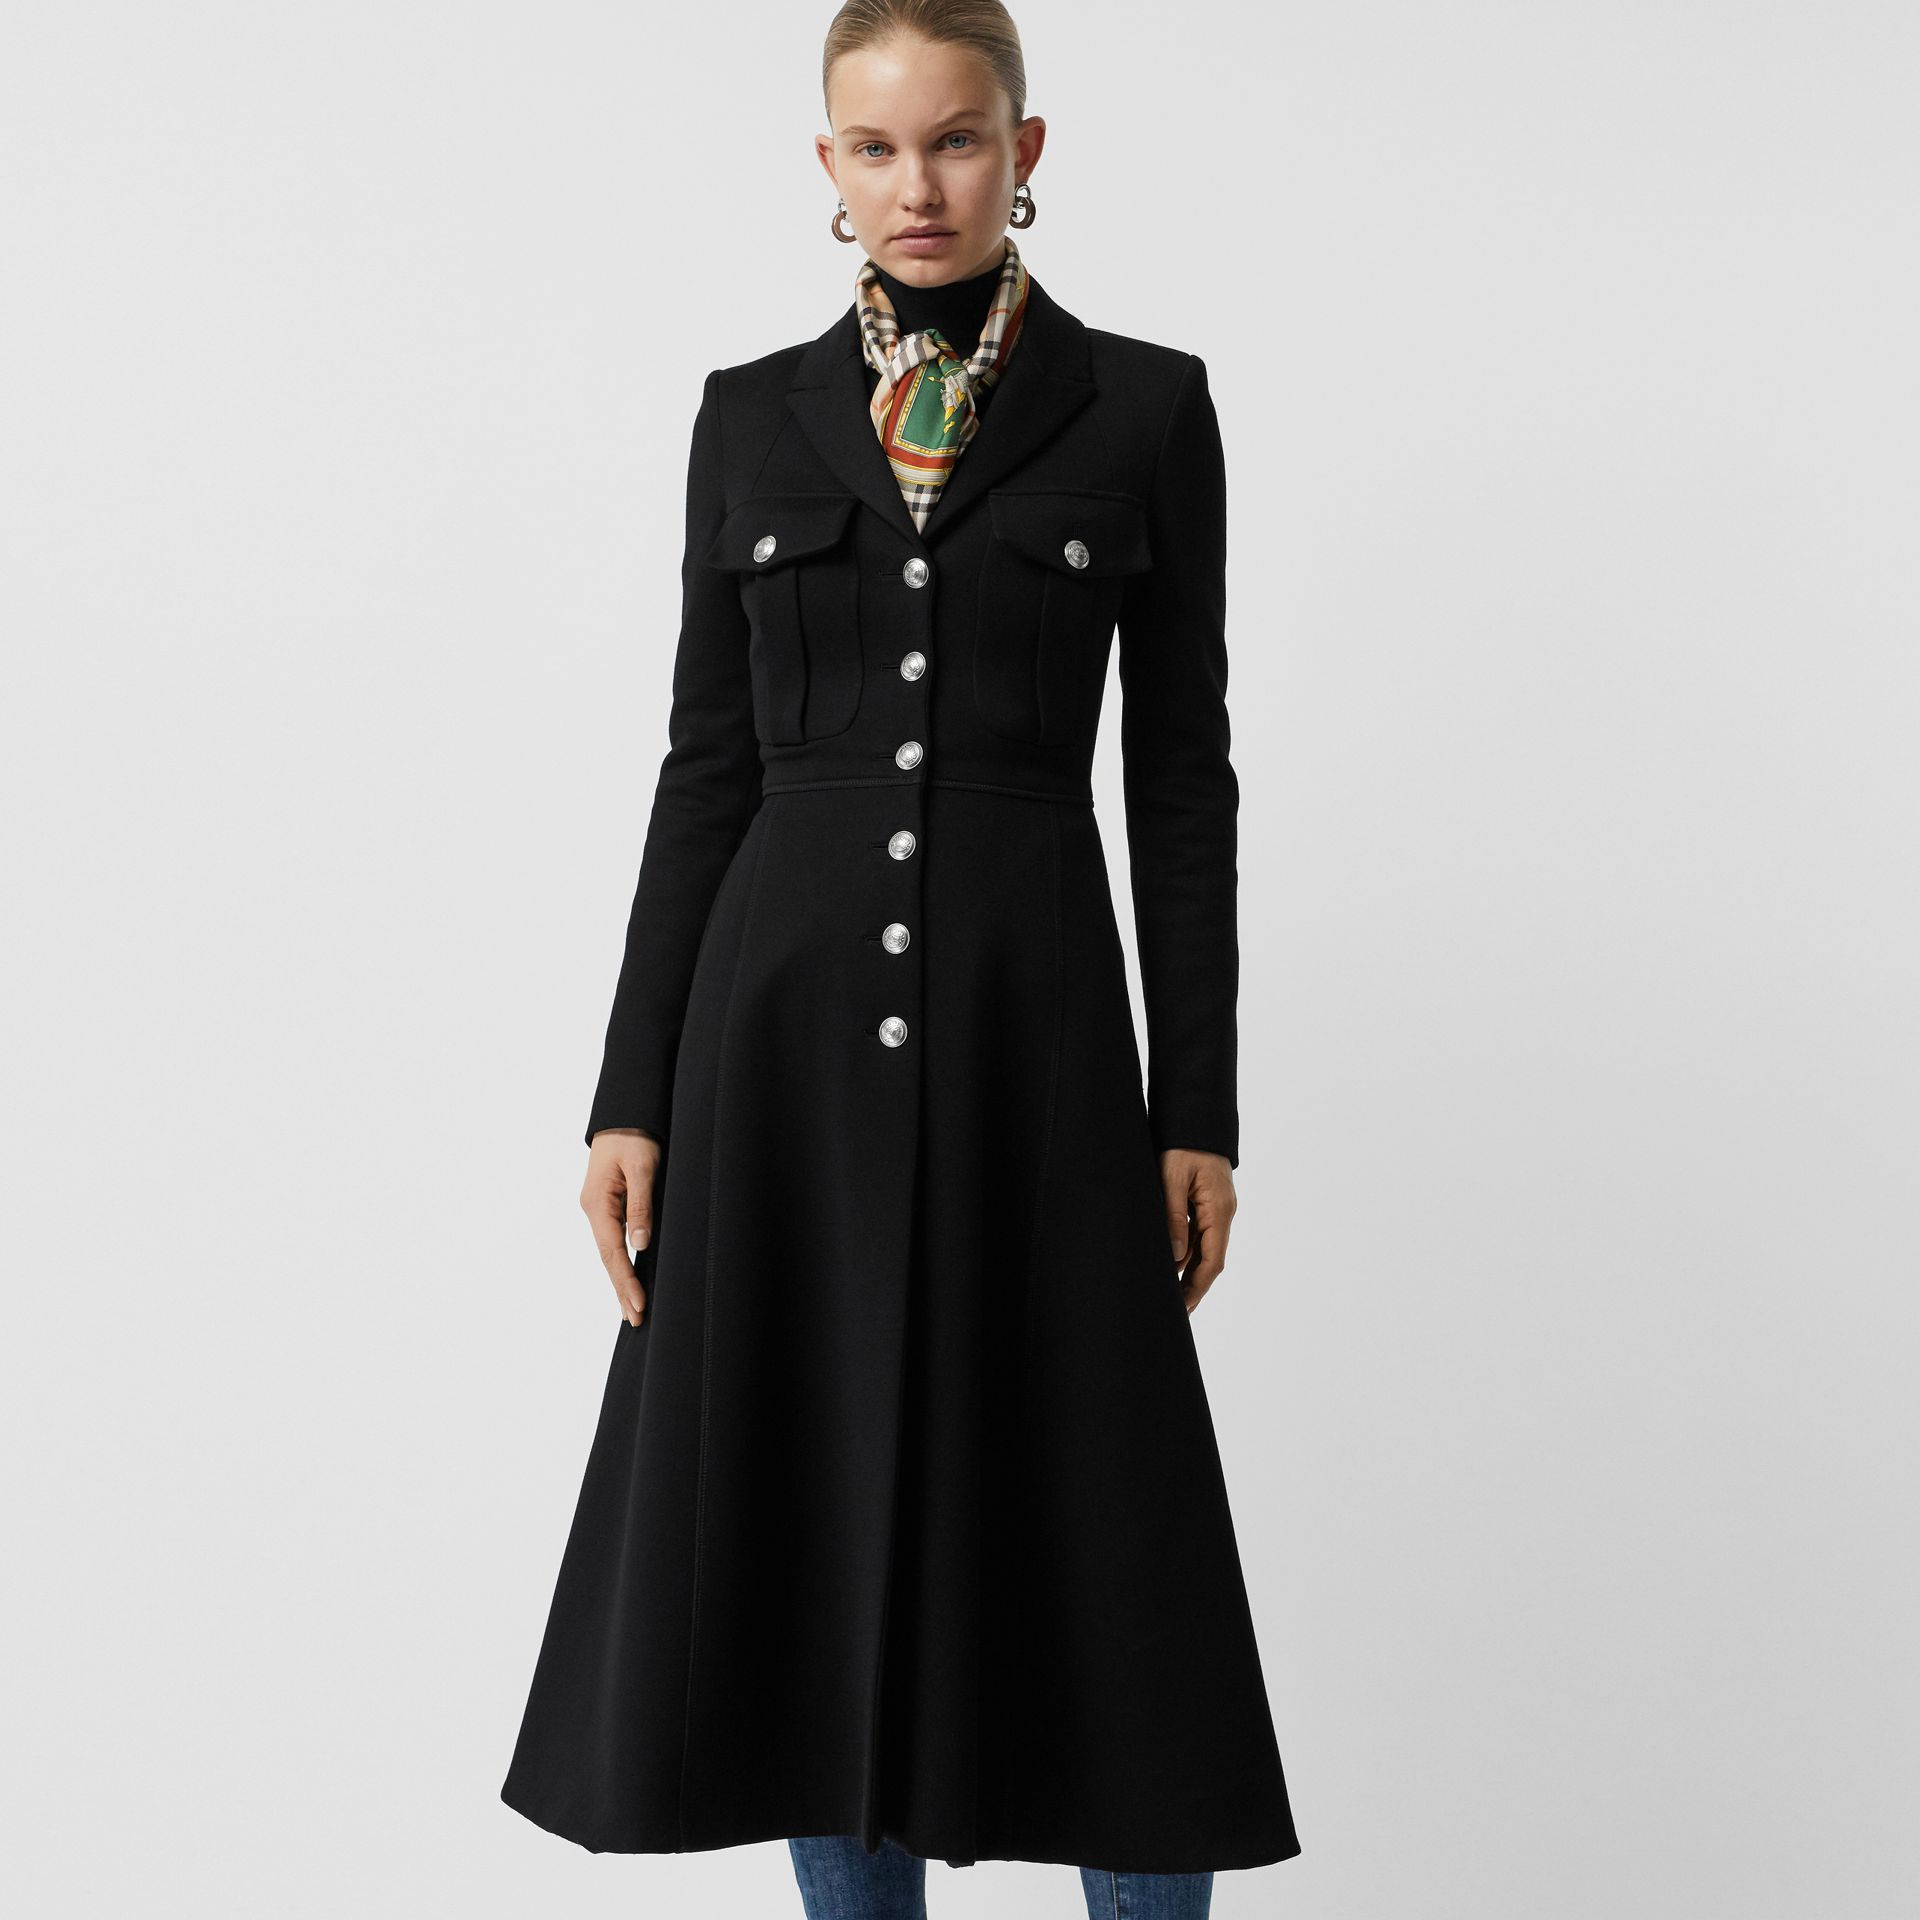 Bonded Cotton Blend Jersey Tailored Coat in Black - Women | Burberry - gallery image 5